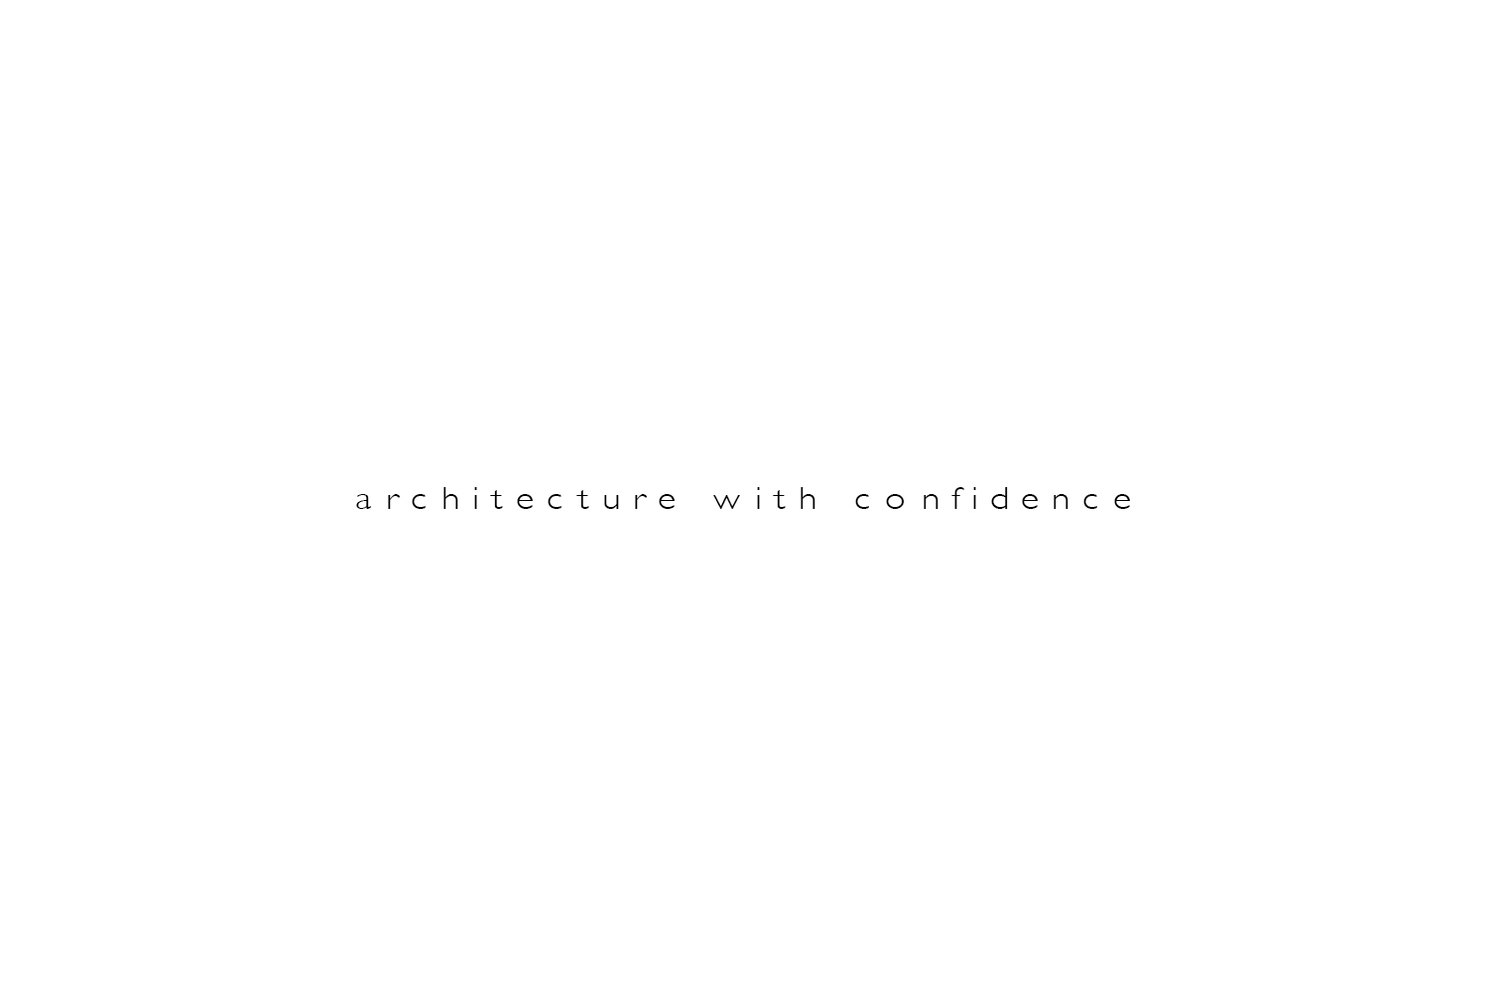 Architecture with confidence buy line